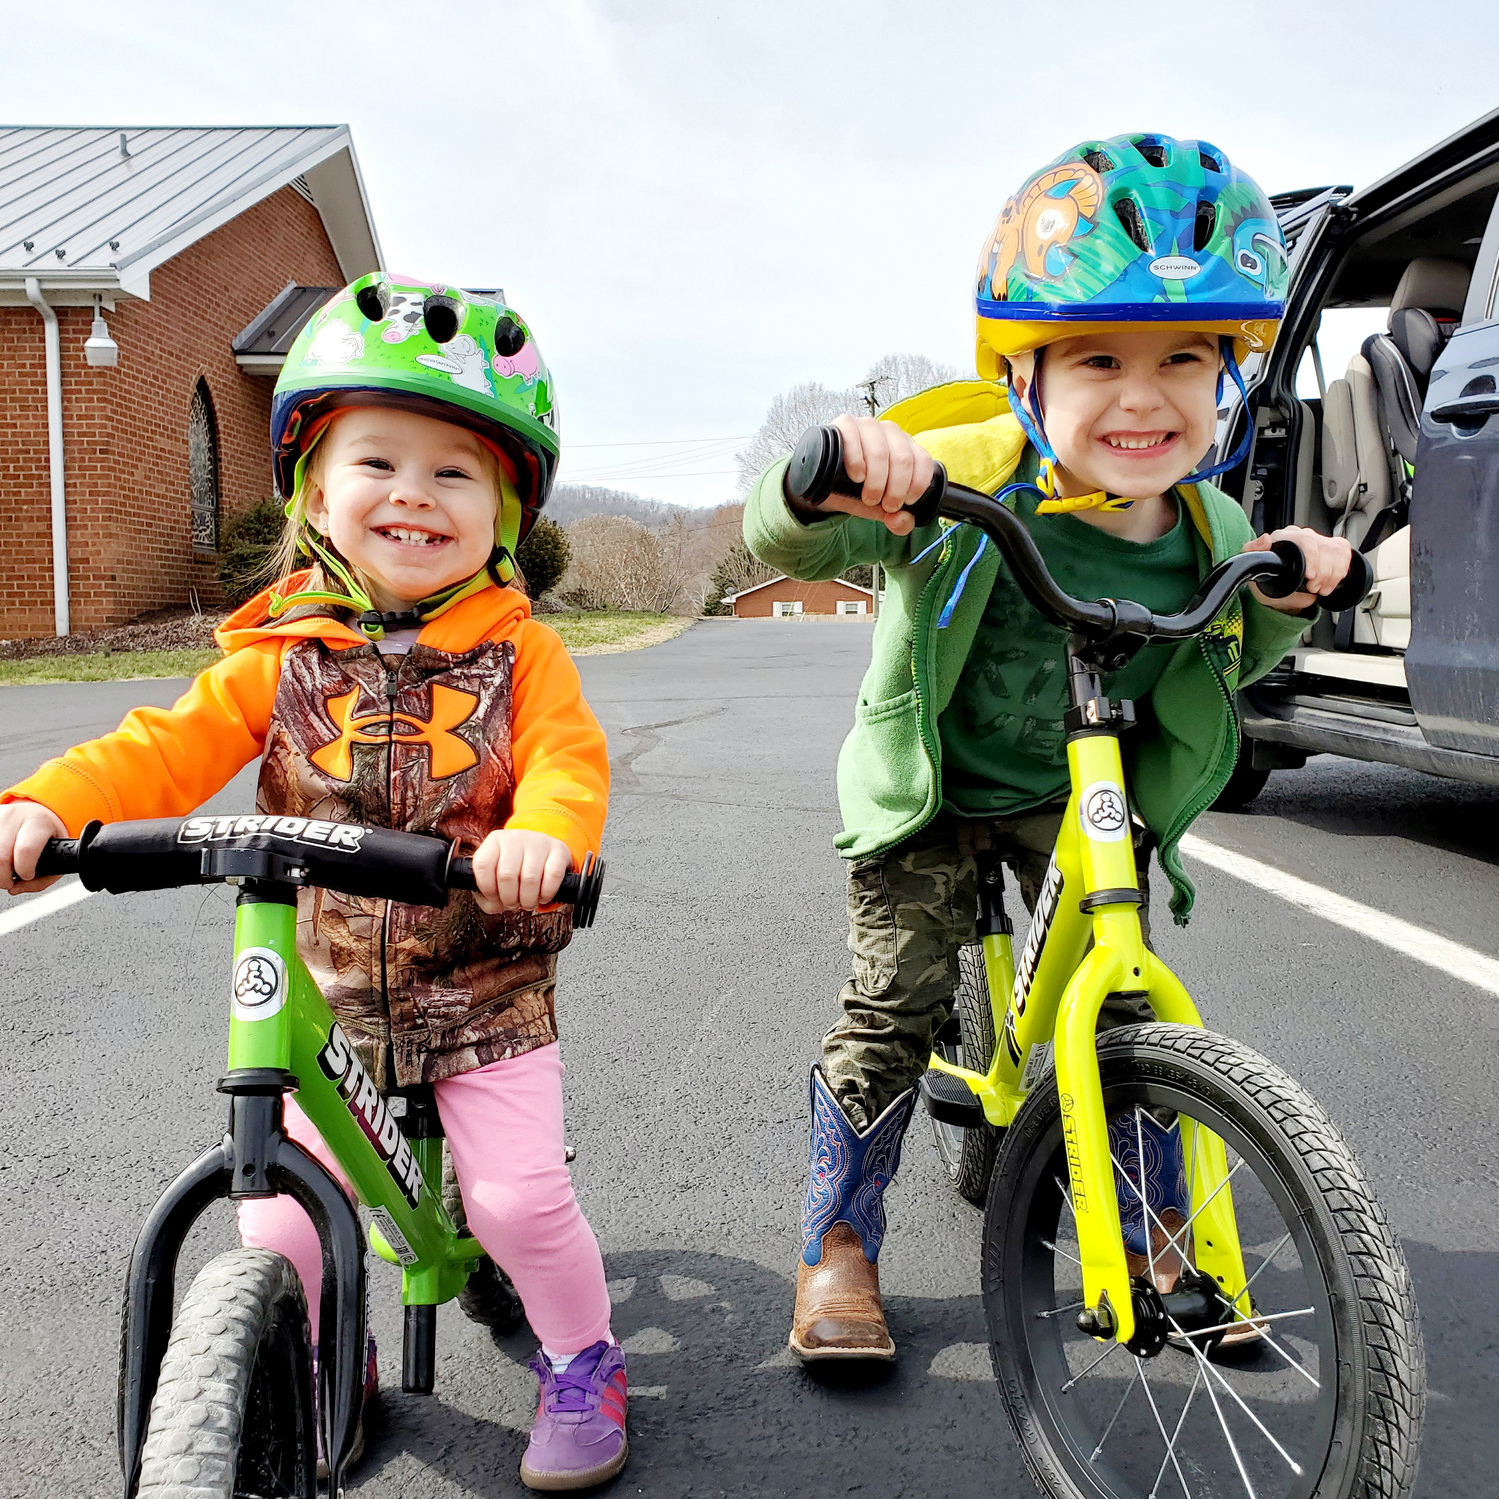 The Progression Of Learning To Ride A Bike = The Progression Of Confidence In Children